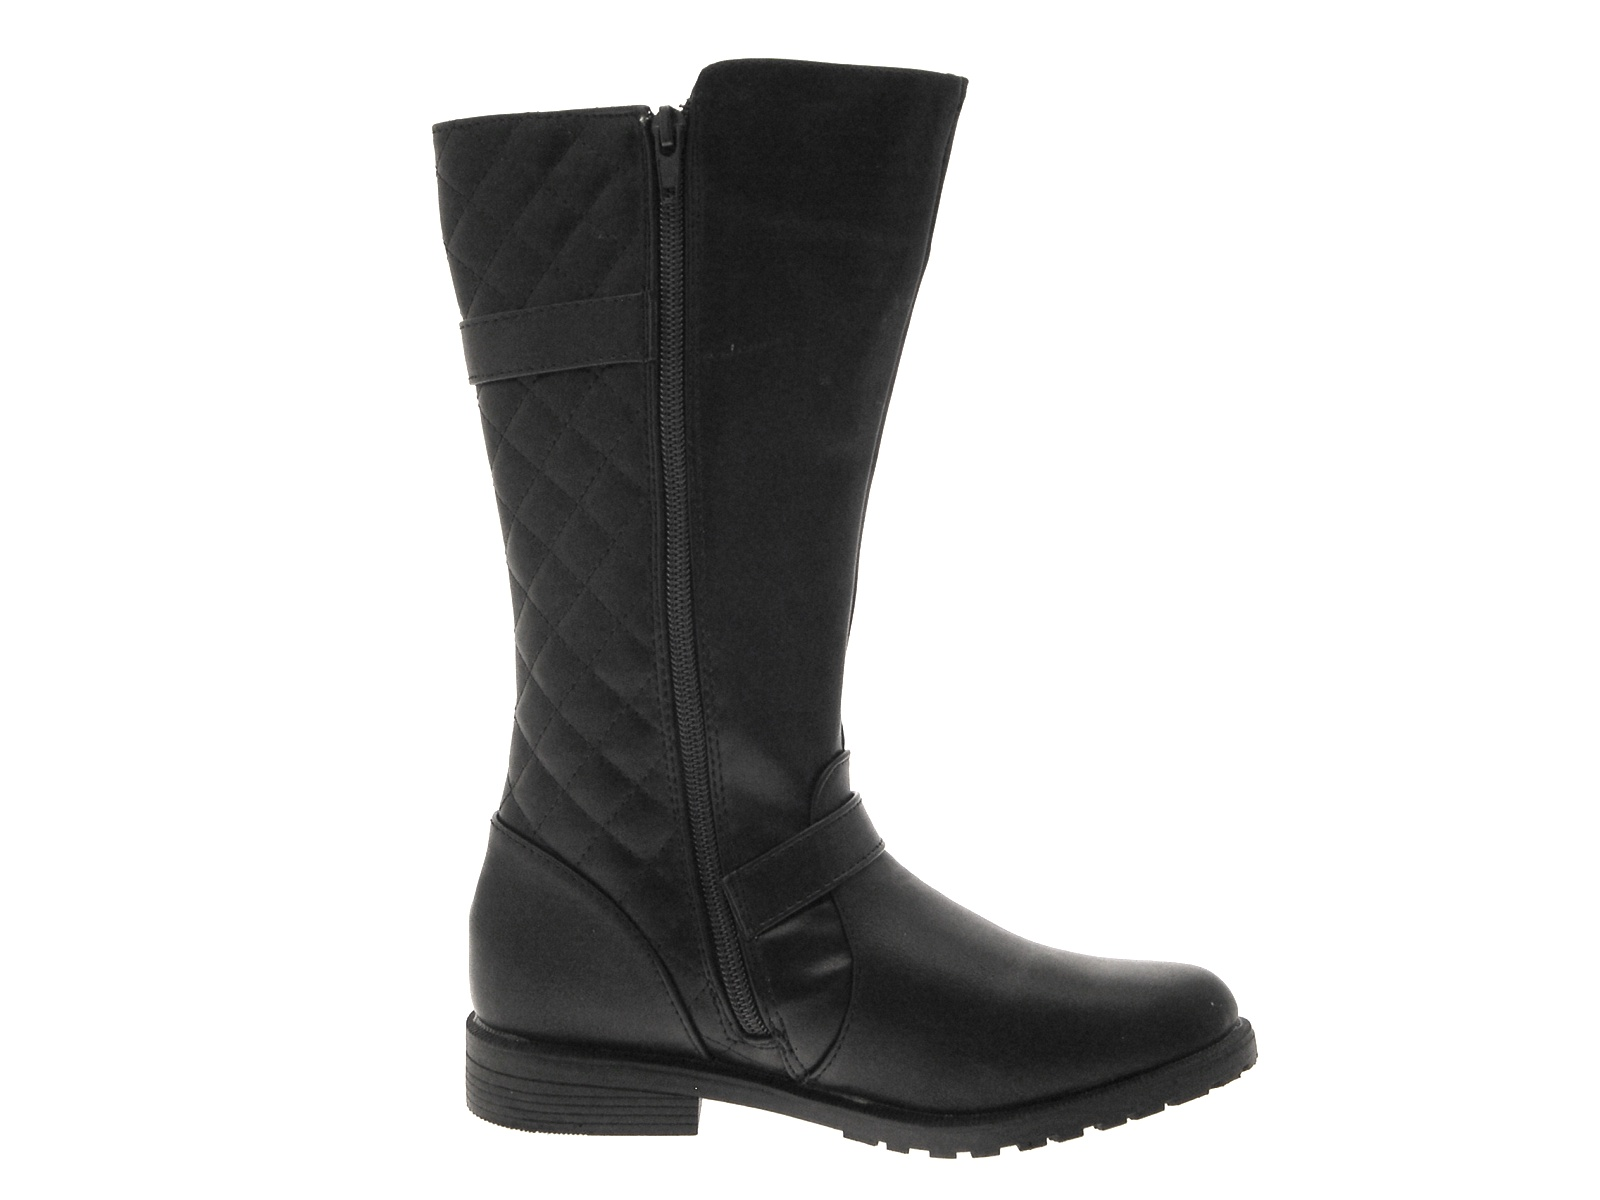 Shop All knee high boots. 2 1/2